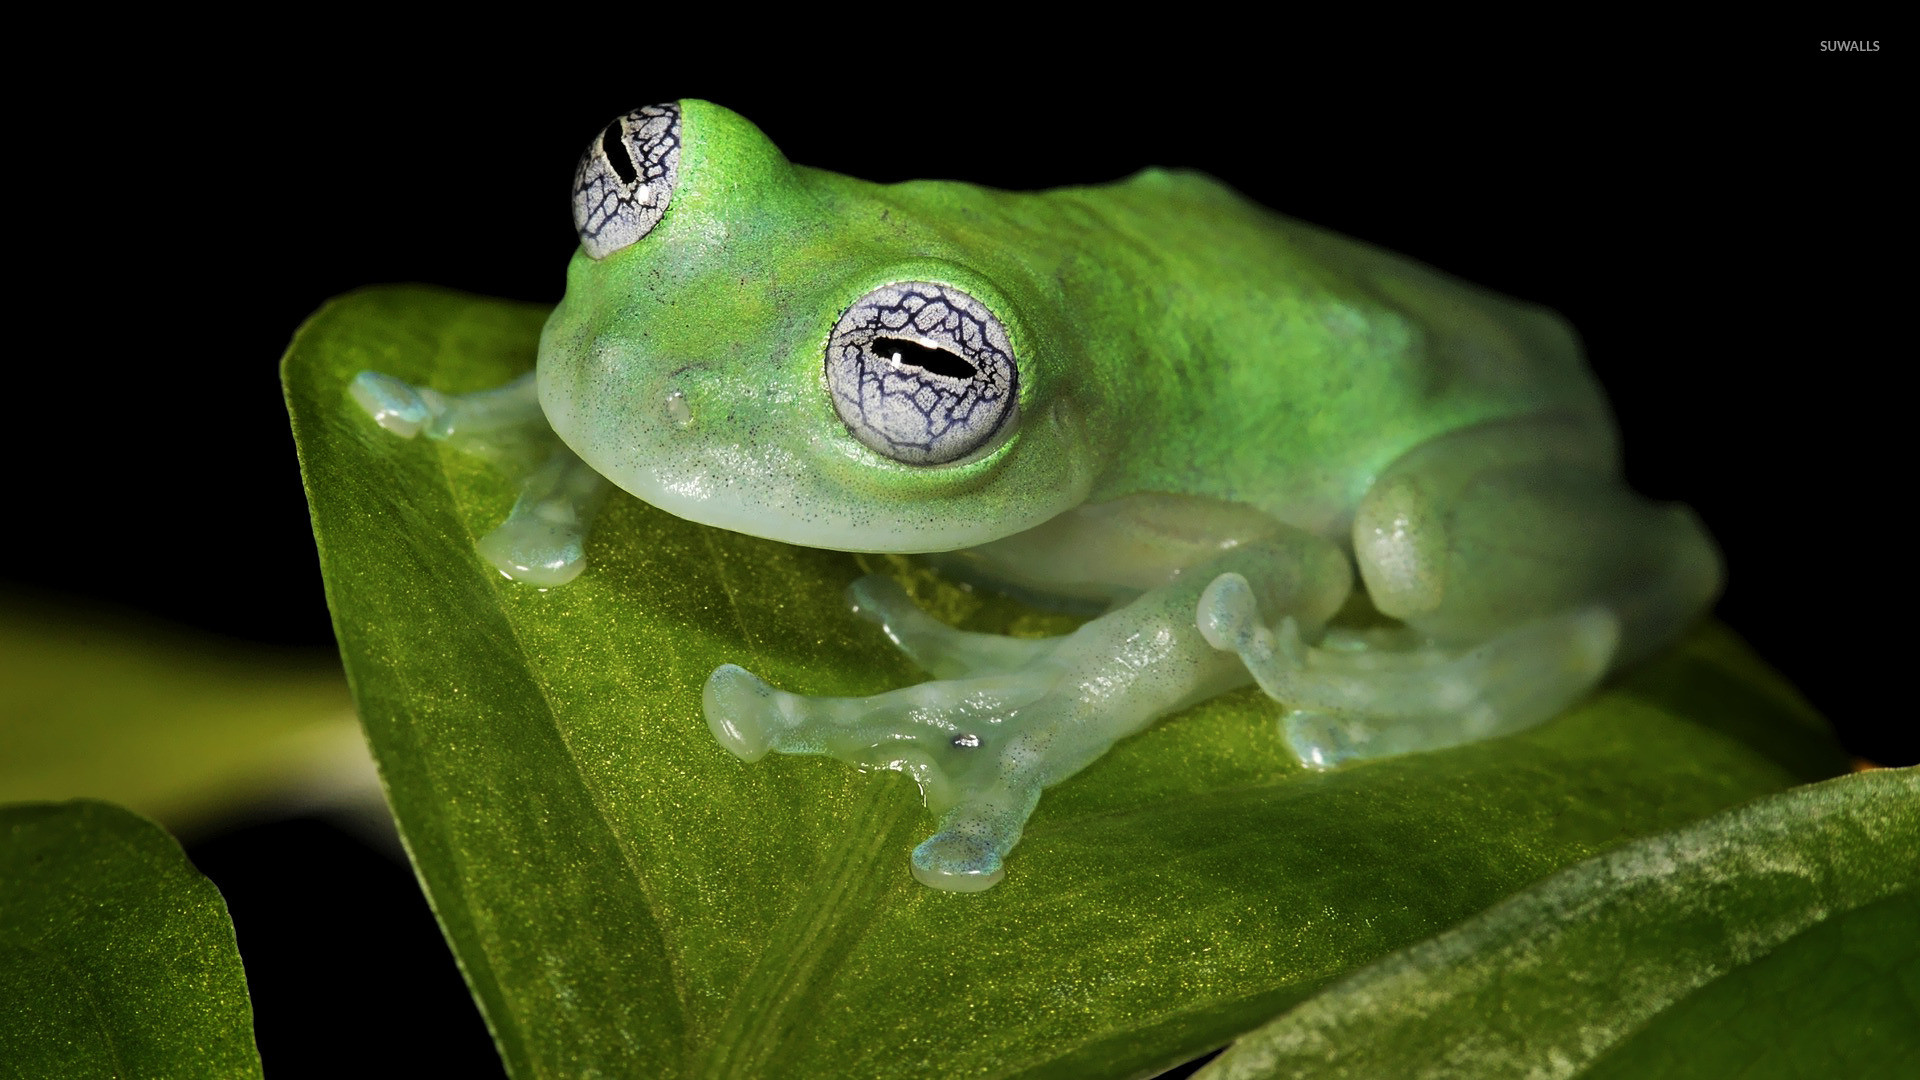 Res: 1920x1080, Glass frog wallpaper